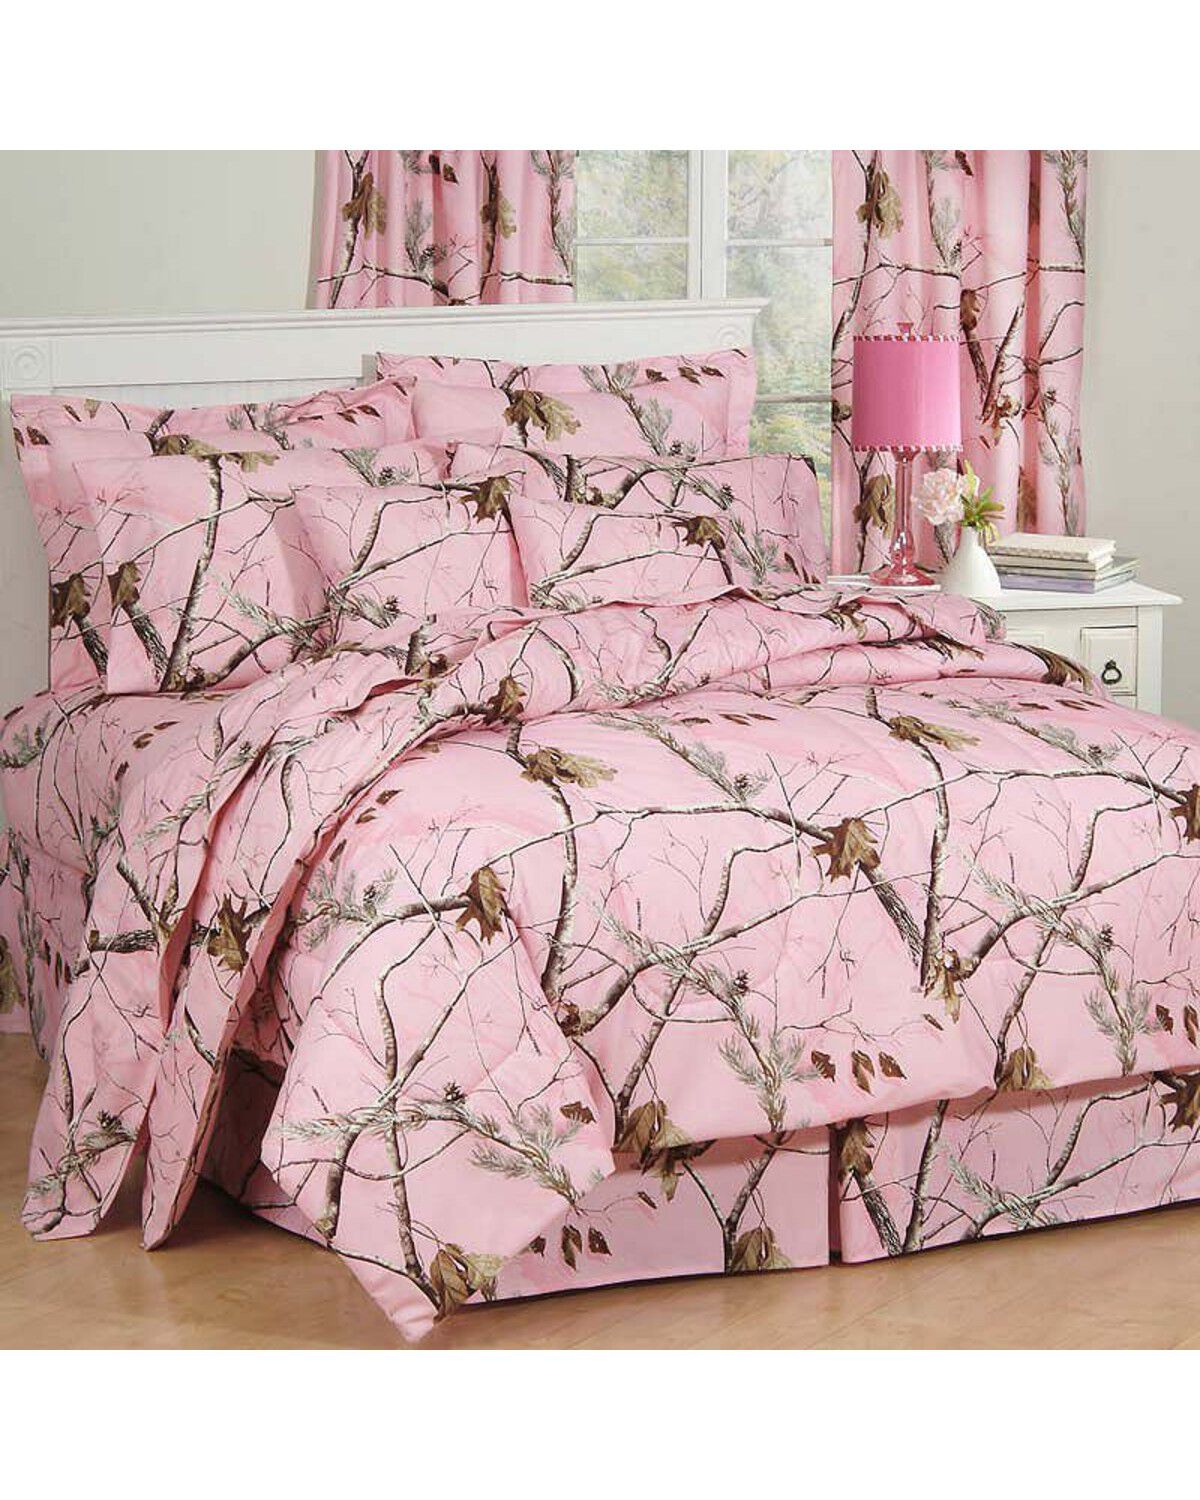 Realtree AP Pink Full Comforter Set, Pink, Hi Res